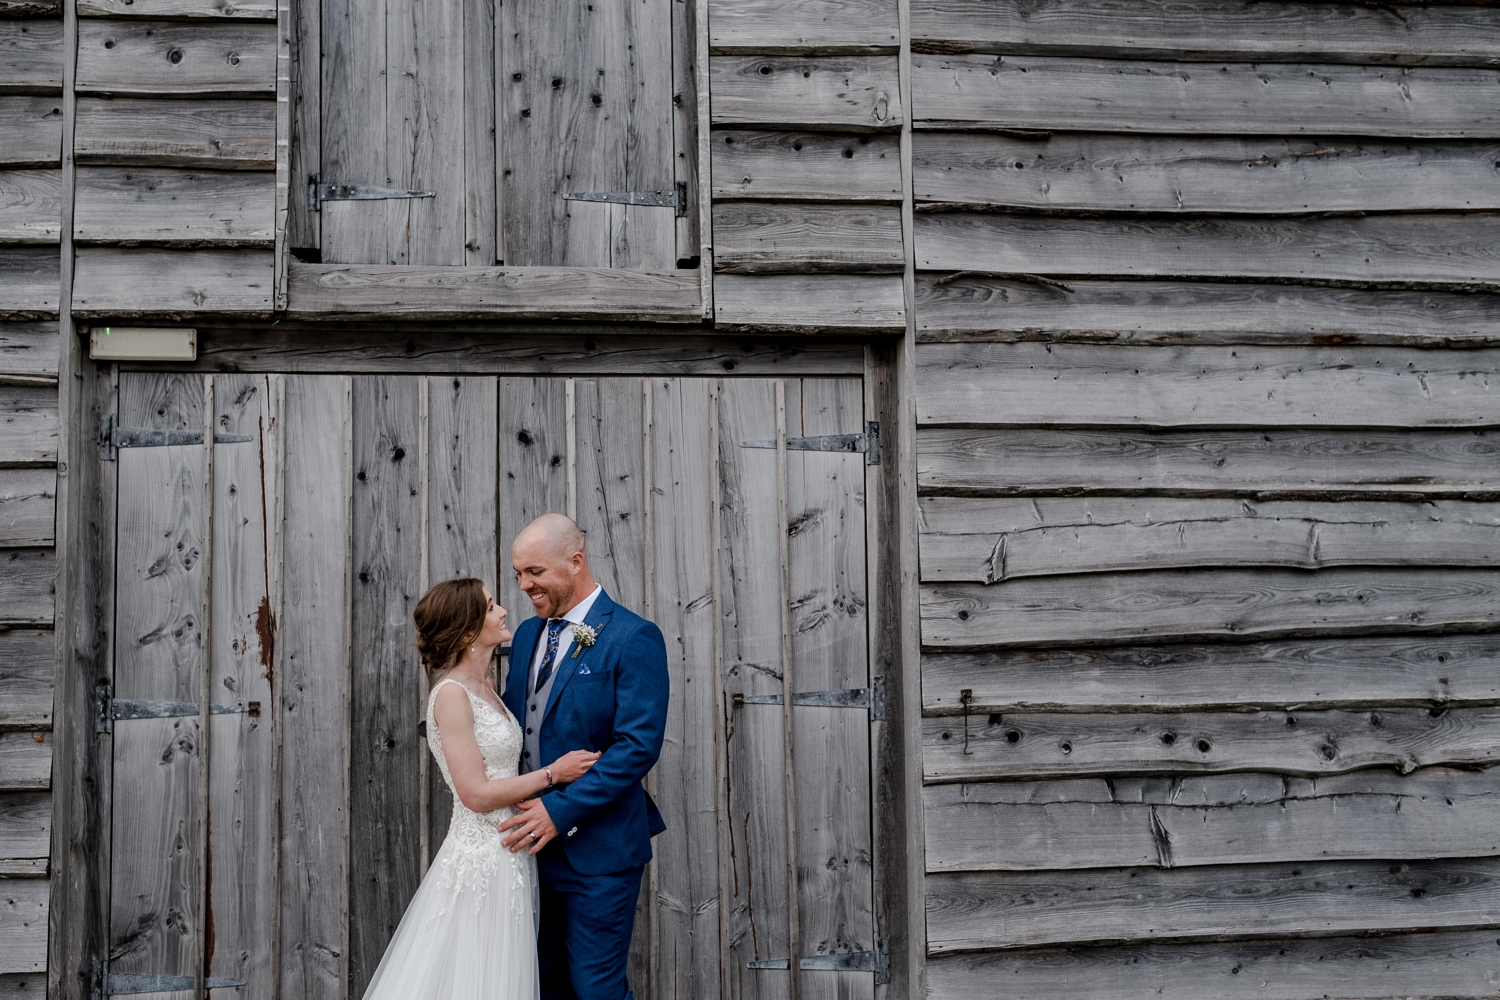 Bride and groom at Woodhouse Barn